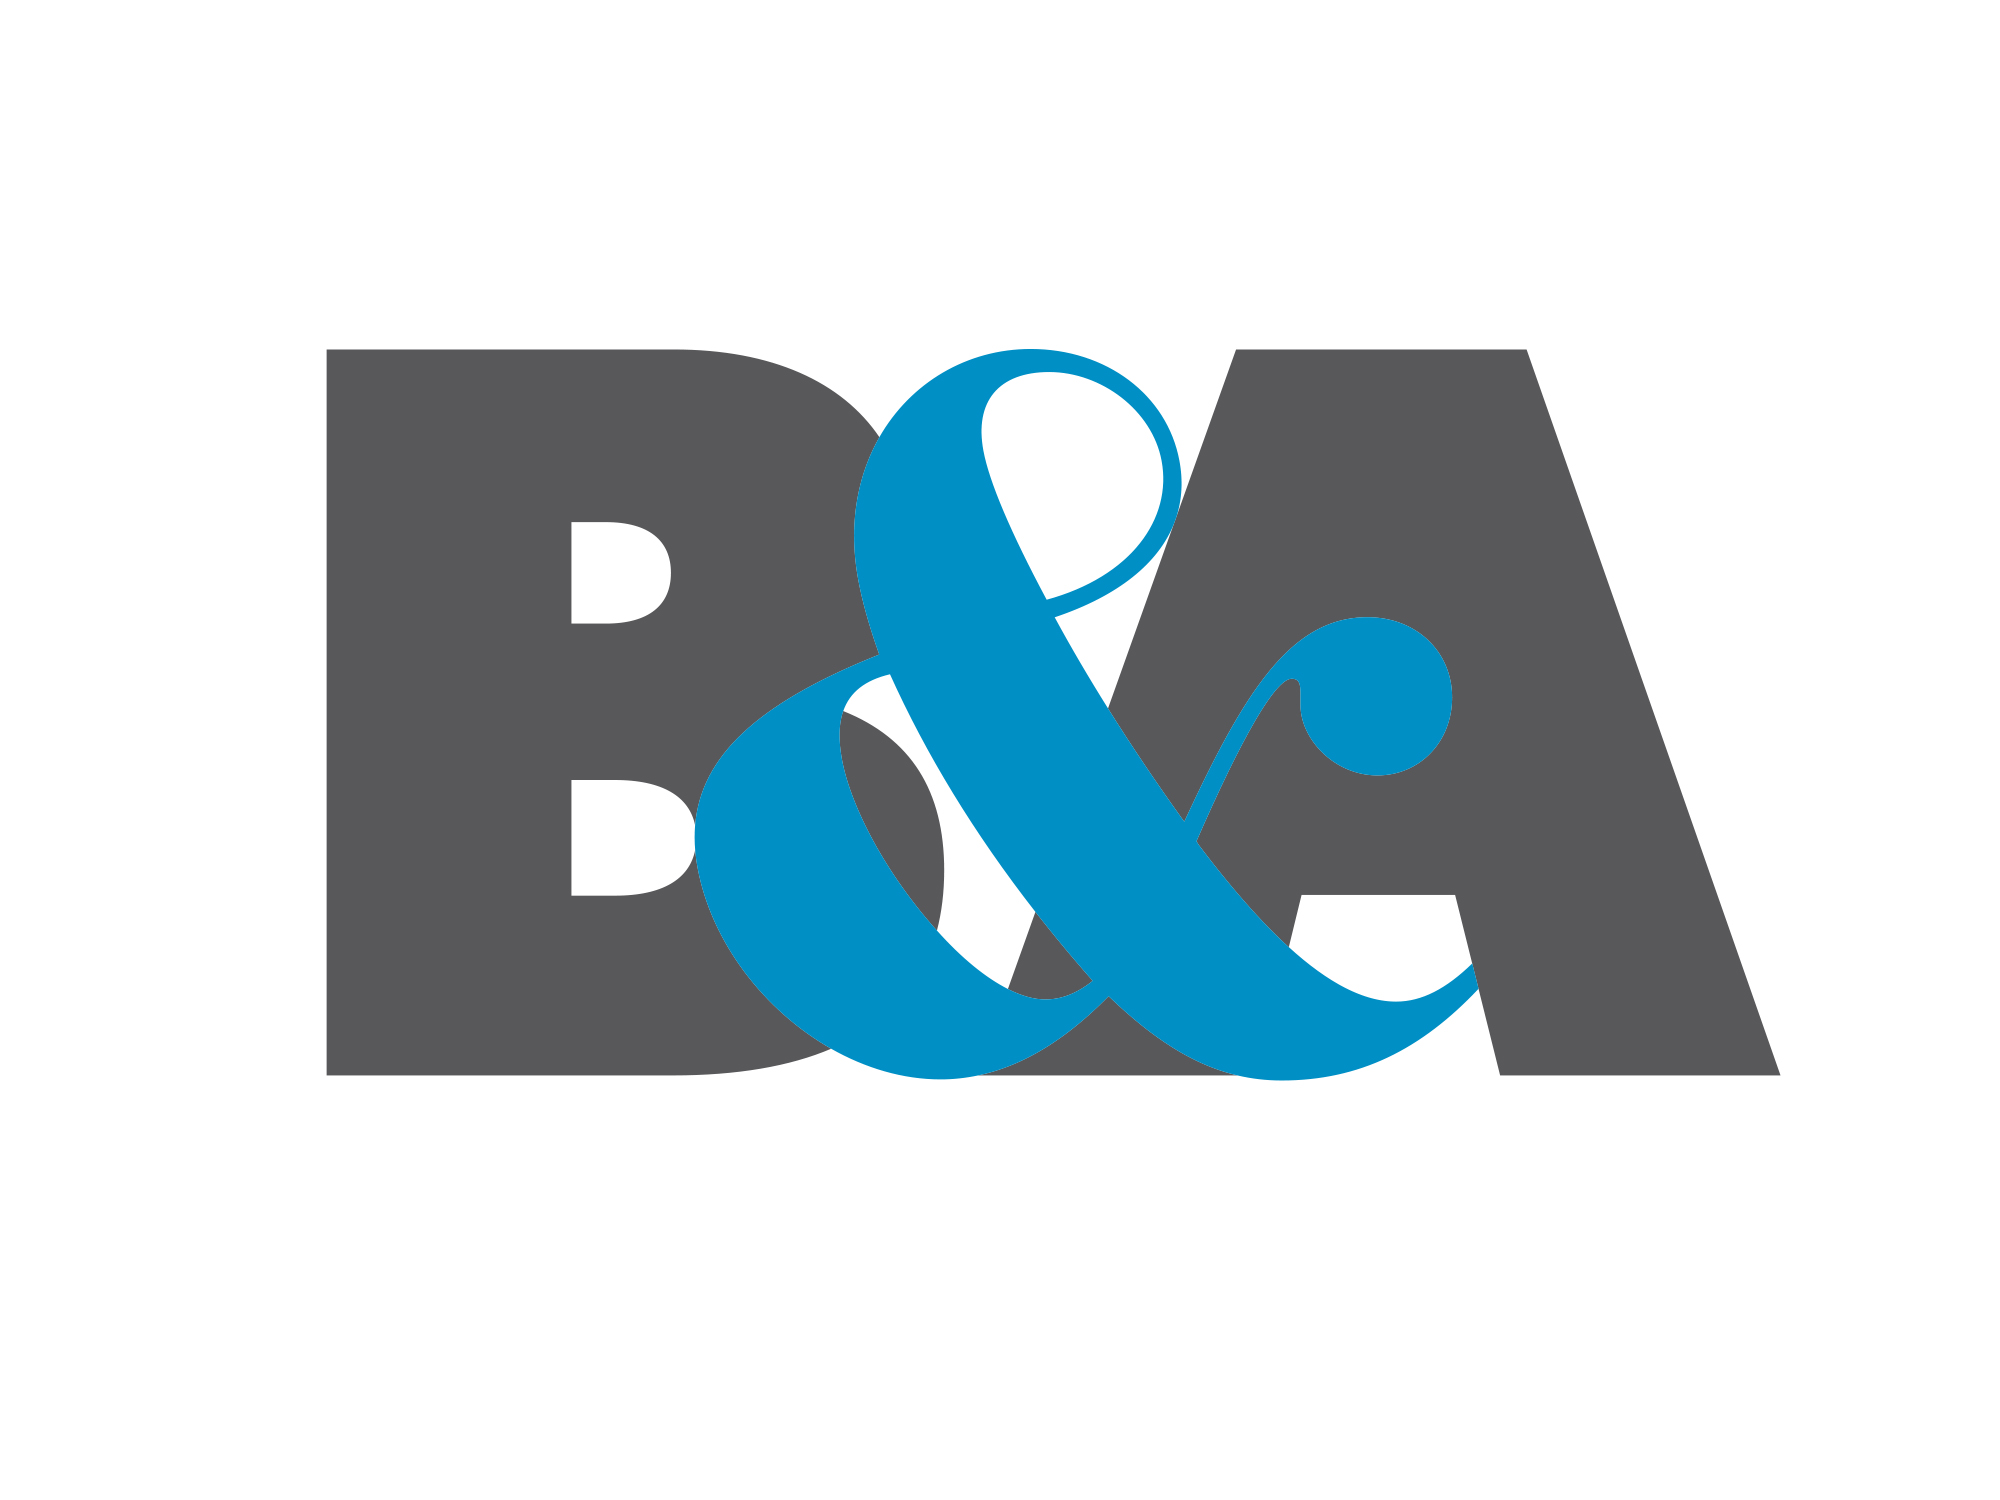 Cover image: B&A Identity